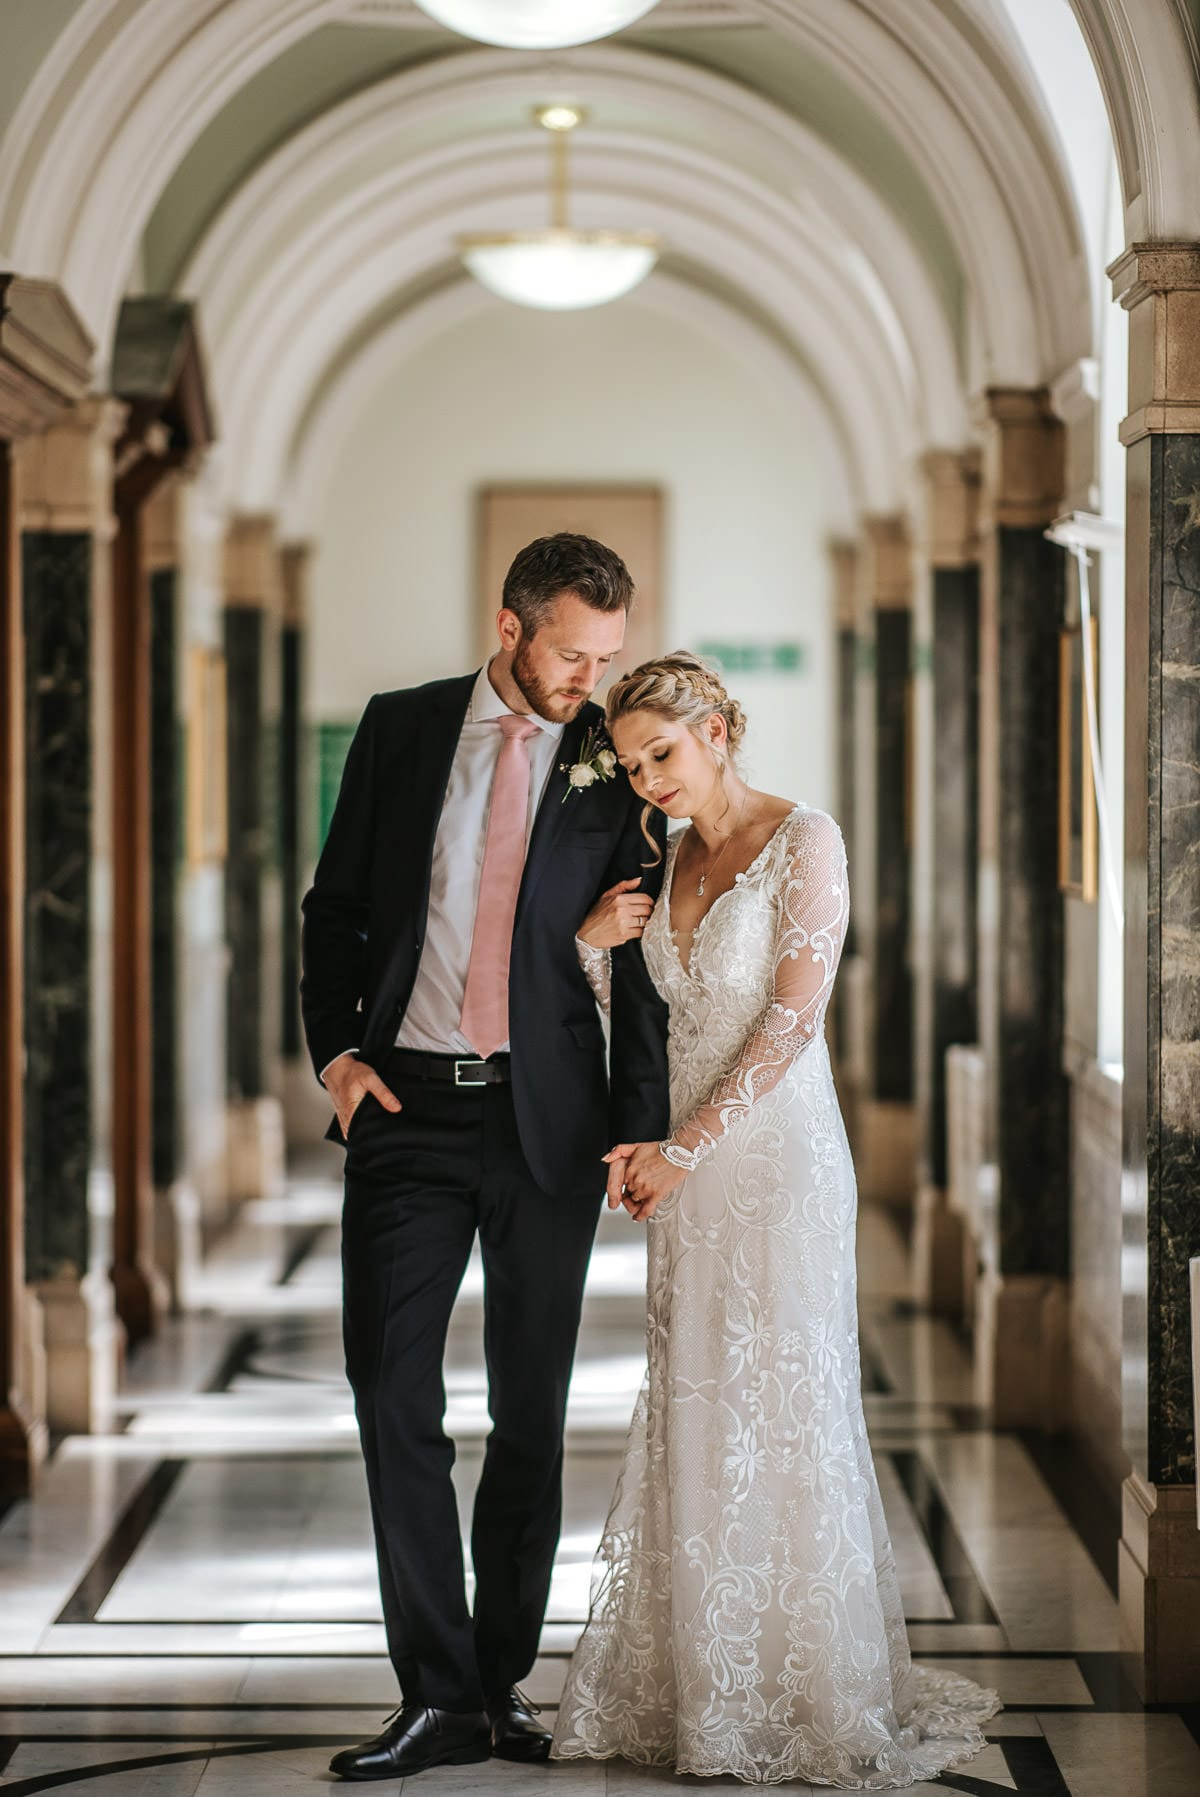 islington town hall wedding couple photo shoot inside